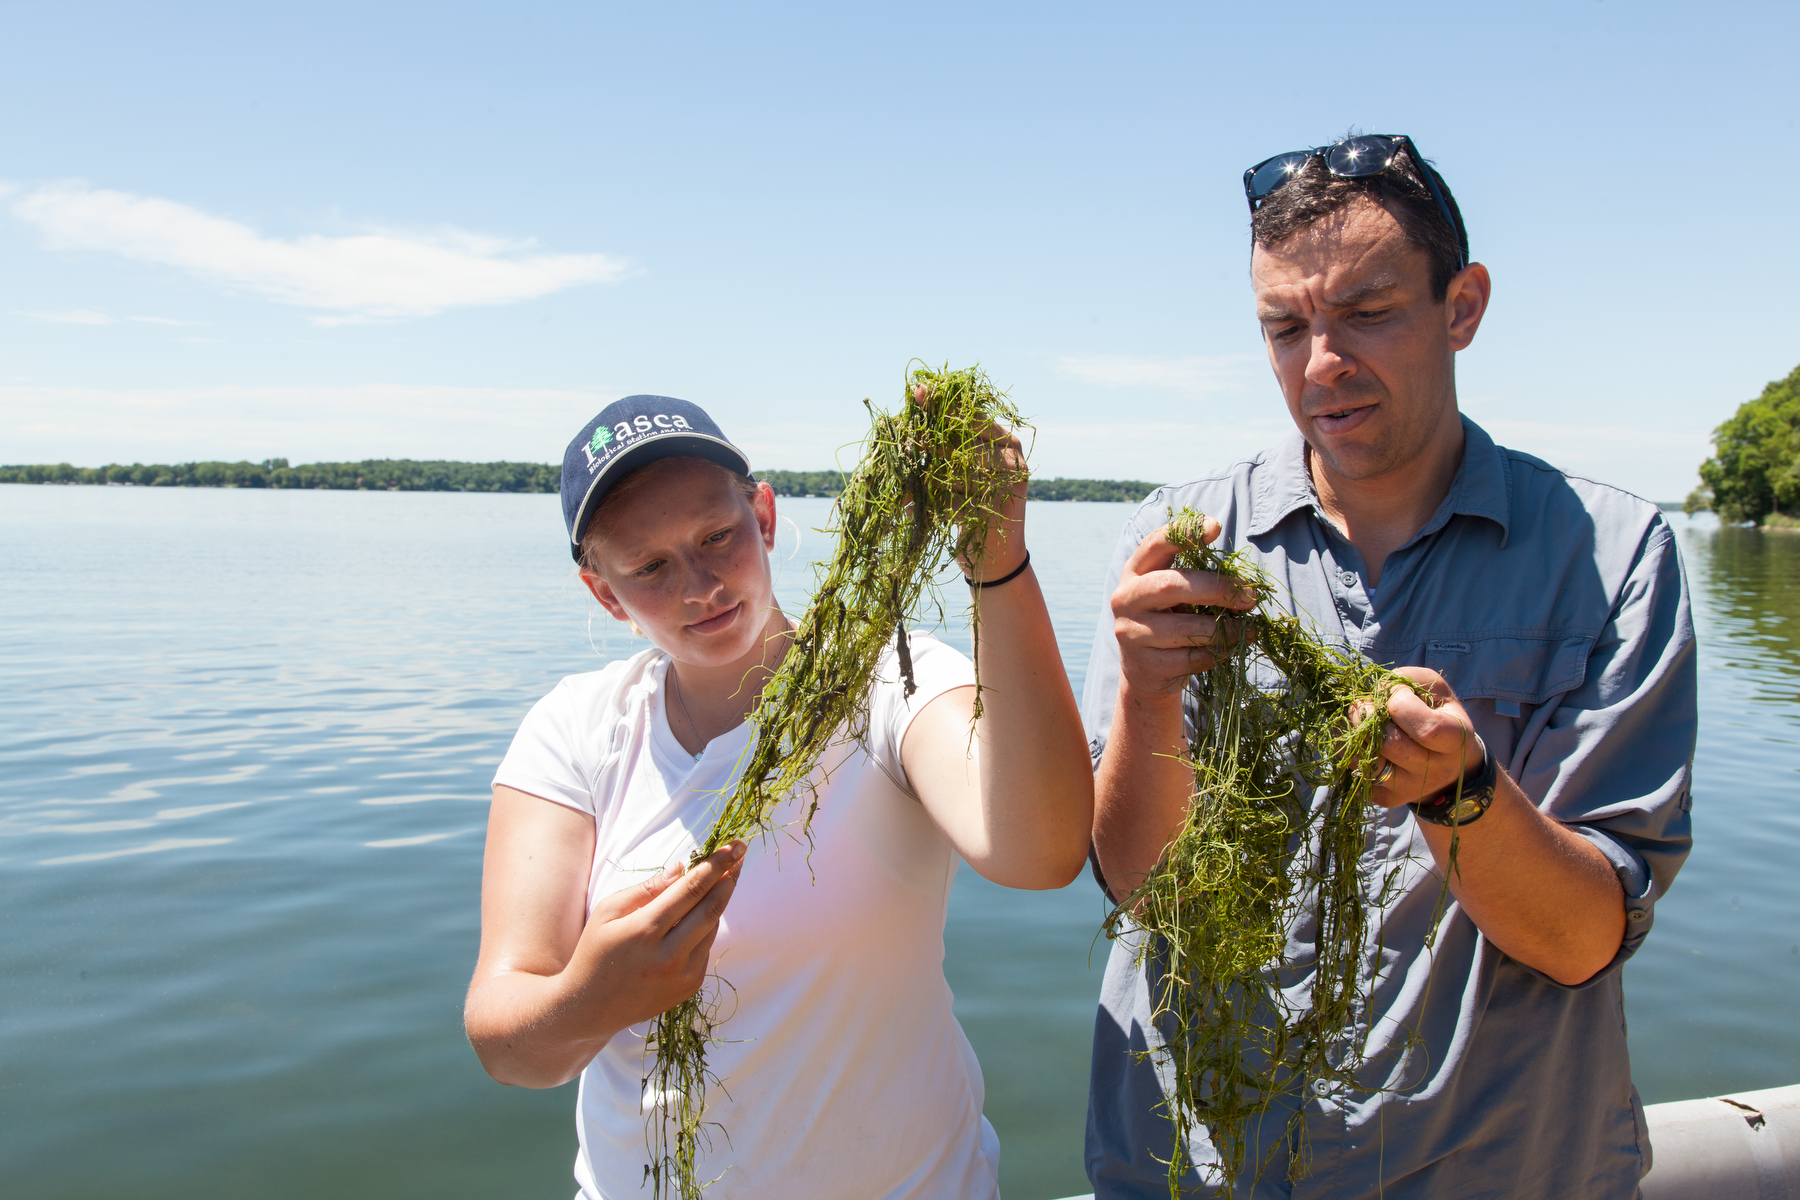 Researcher Dan Larkin and graduate student Carli Wagner look at starry stonewort on Lake Koronis.